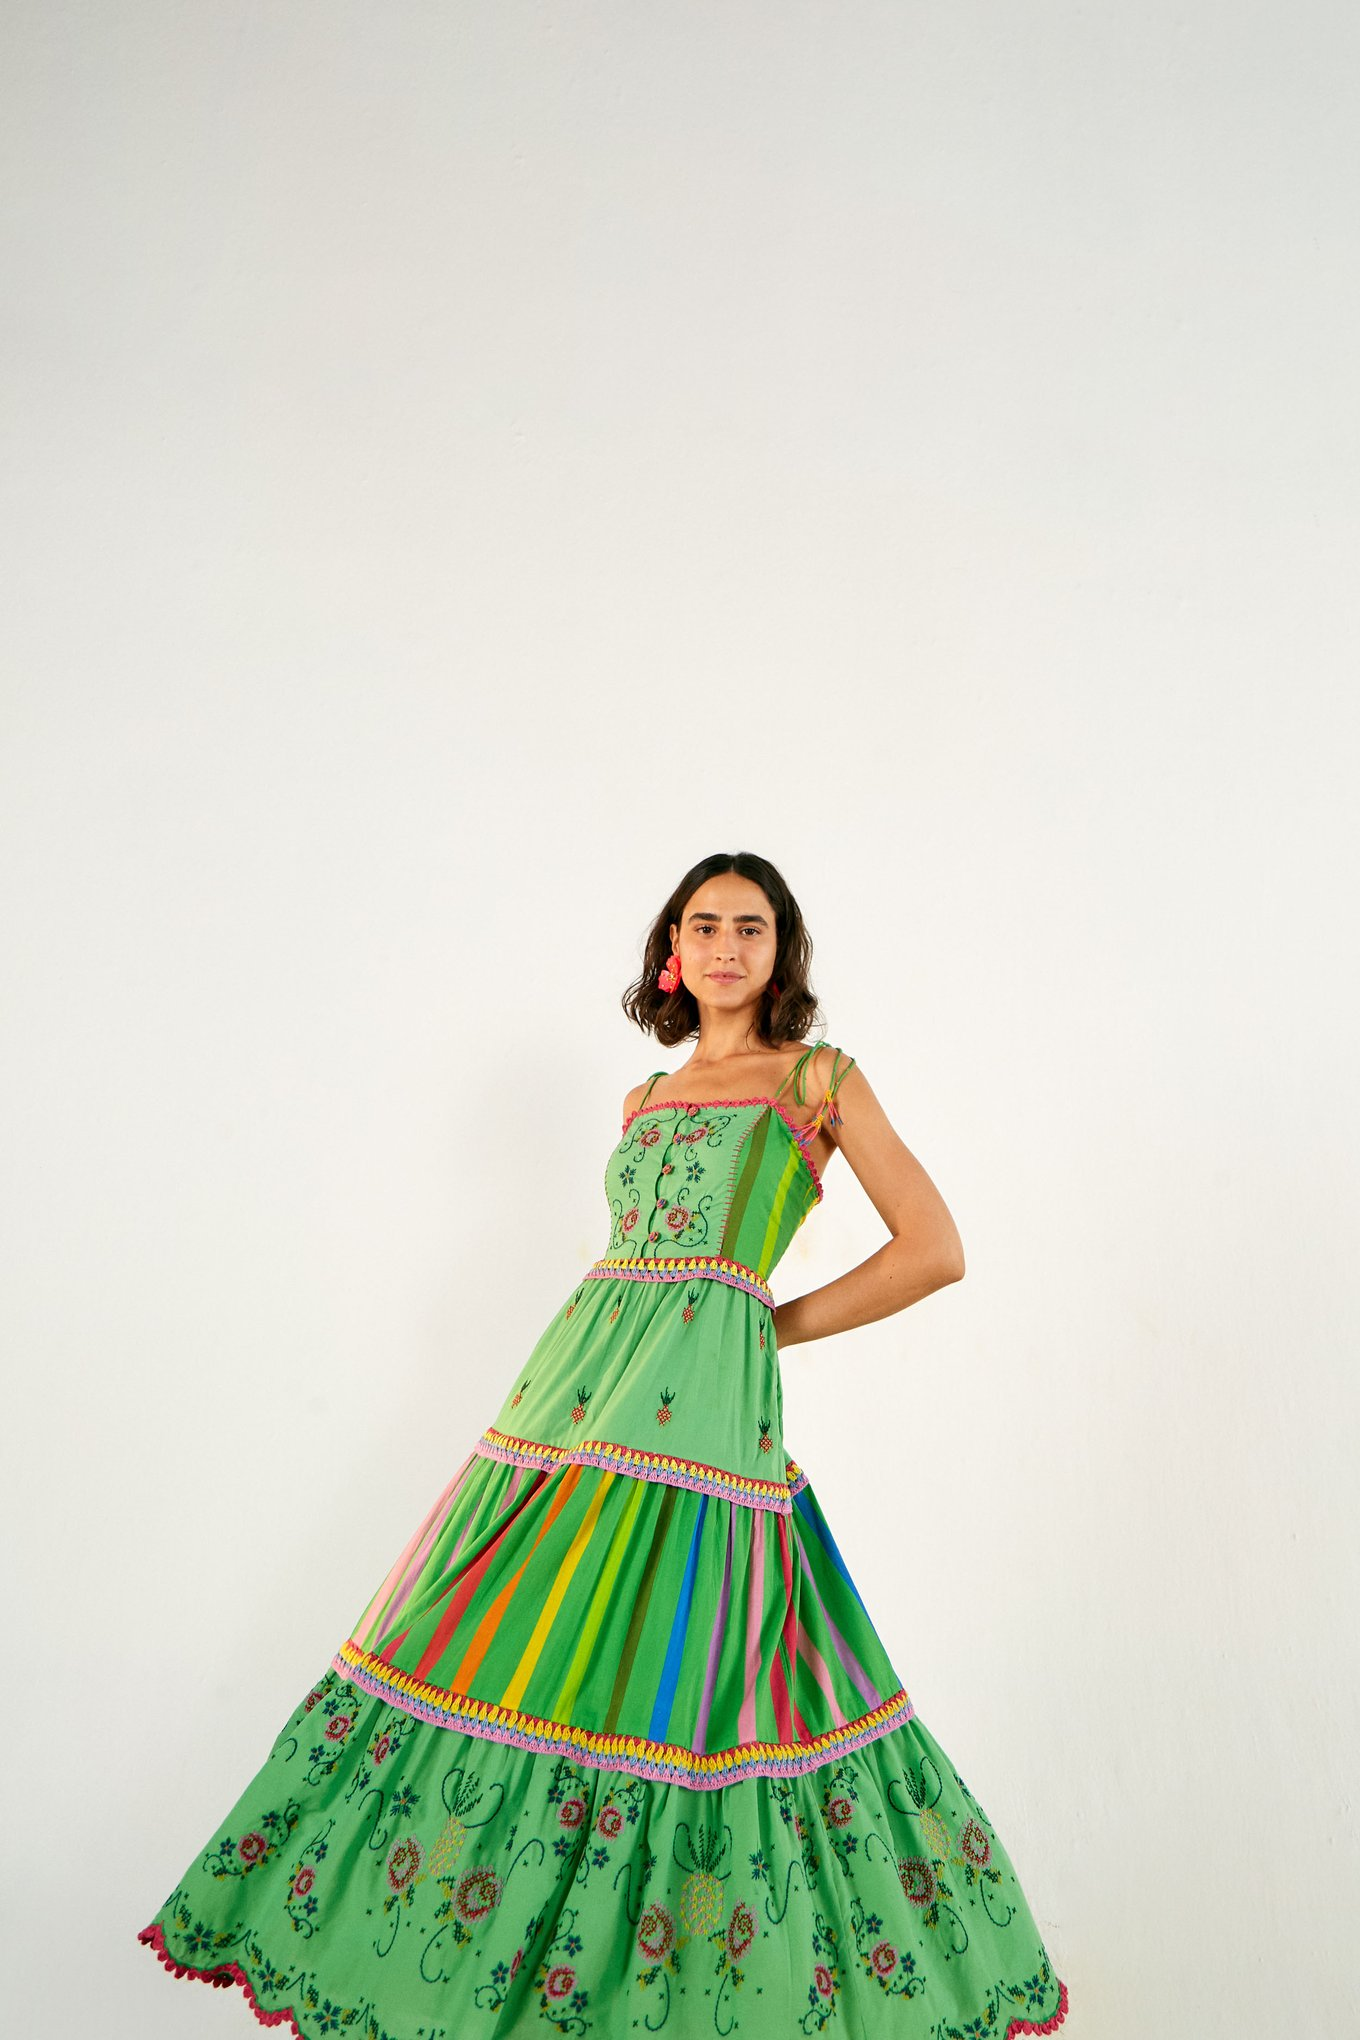 Green Embroidered Tiered Dress $385